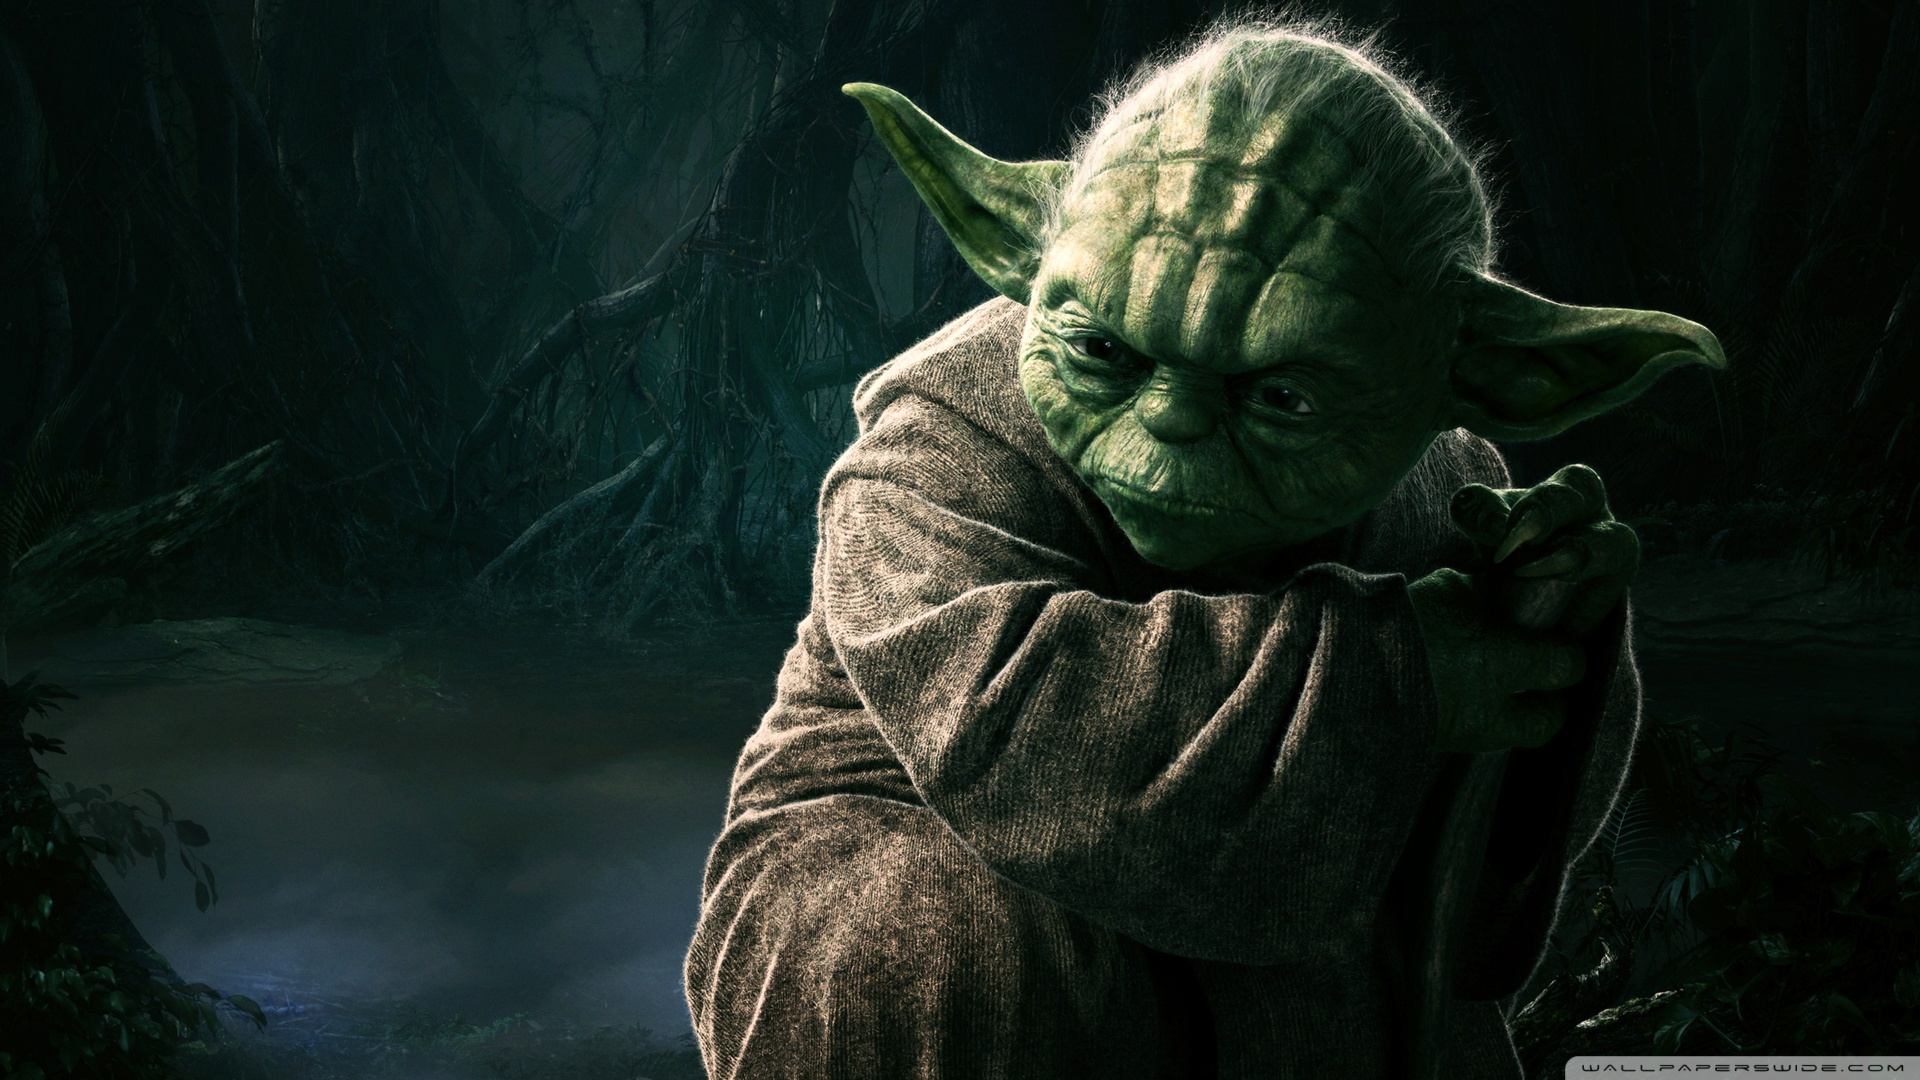 Star Wars Yoda Jedi Master 1920x1080 HD Wallpaper Movies 1920x1080